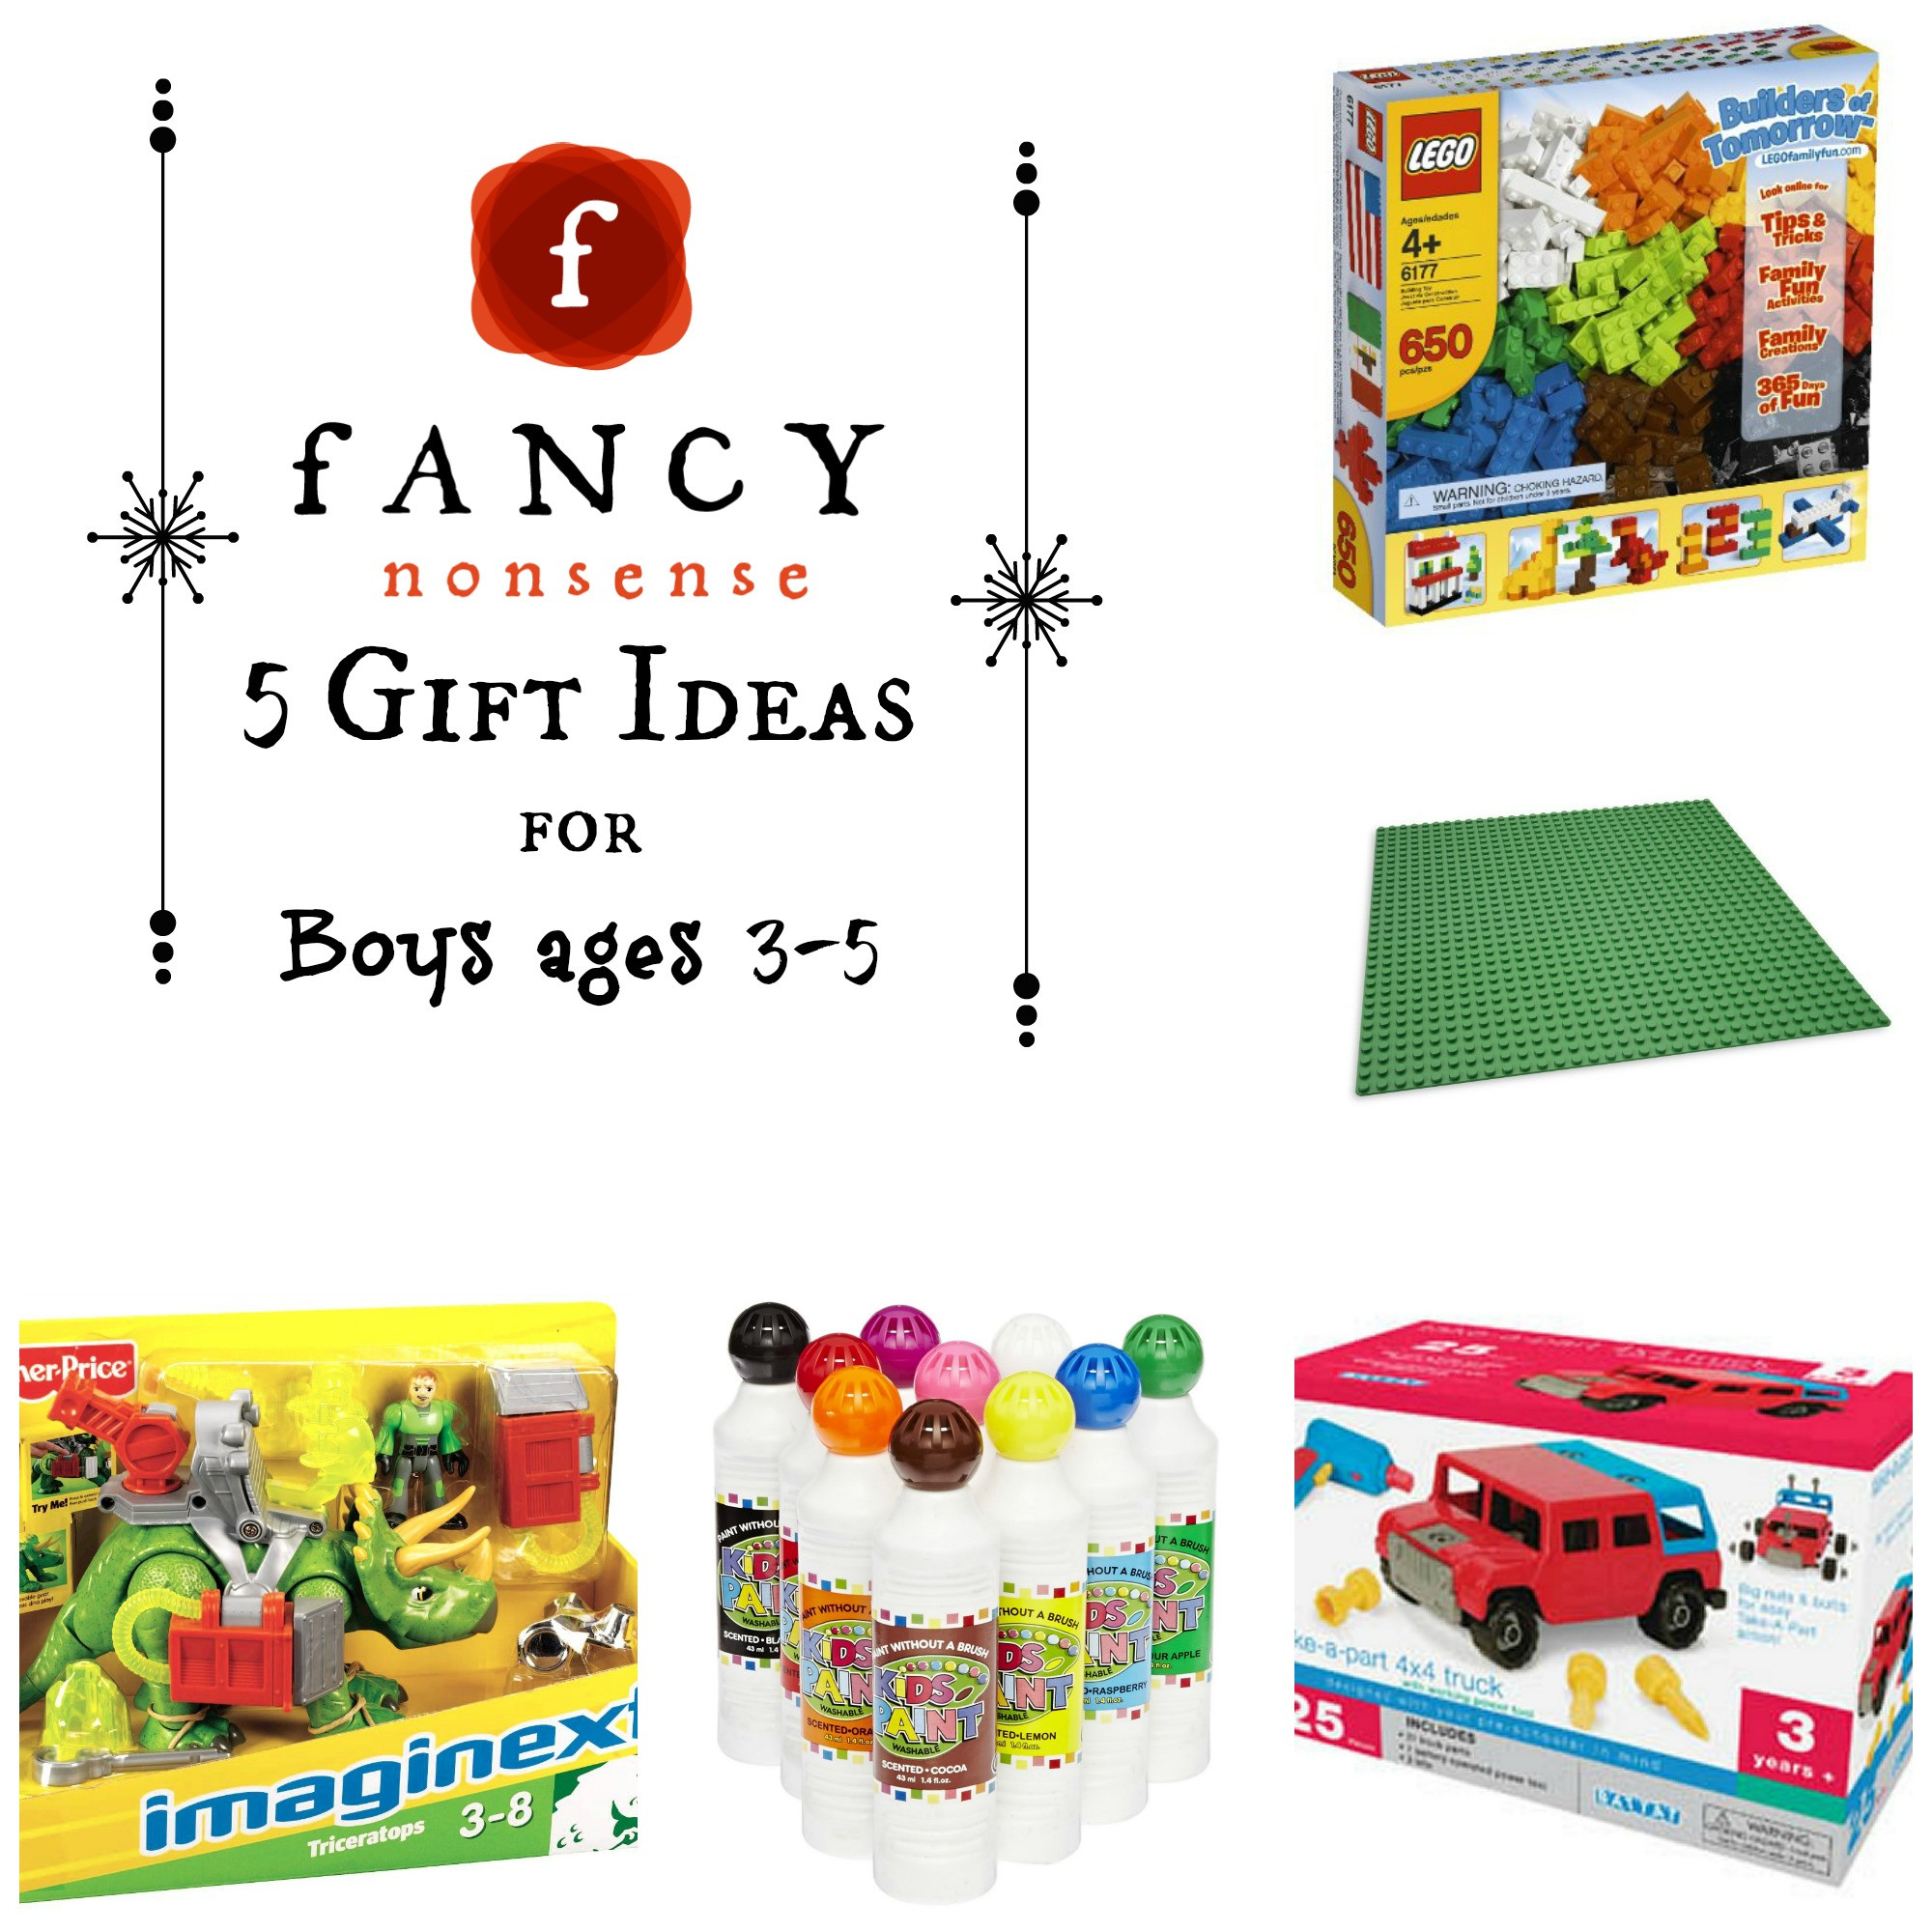 Best ideas about Gift Ideas For Boys Age 11 . Save or Pin 5 Gift Ideas For Boys Ages 3 5 Now.